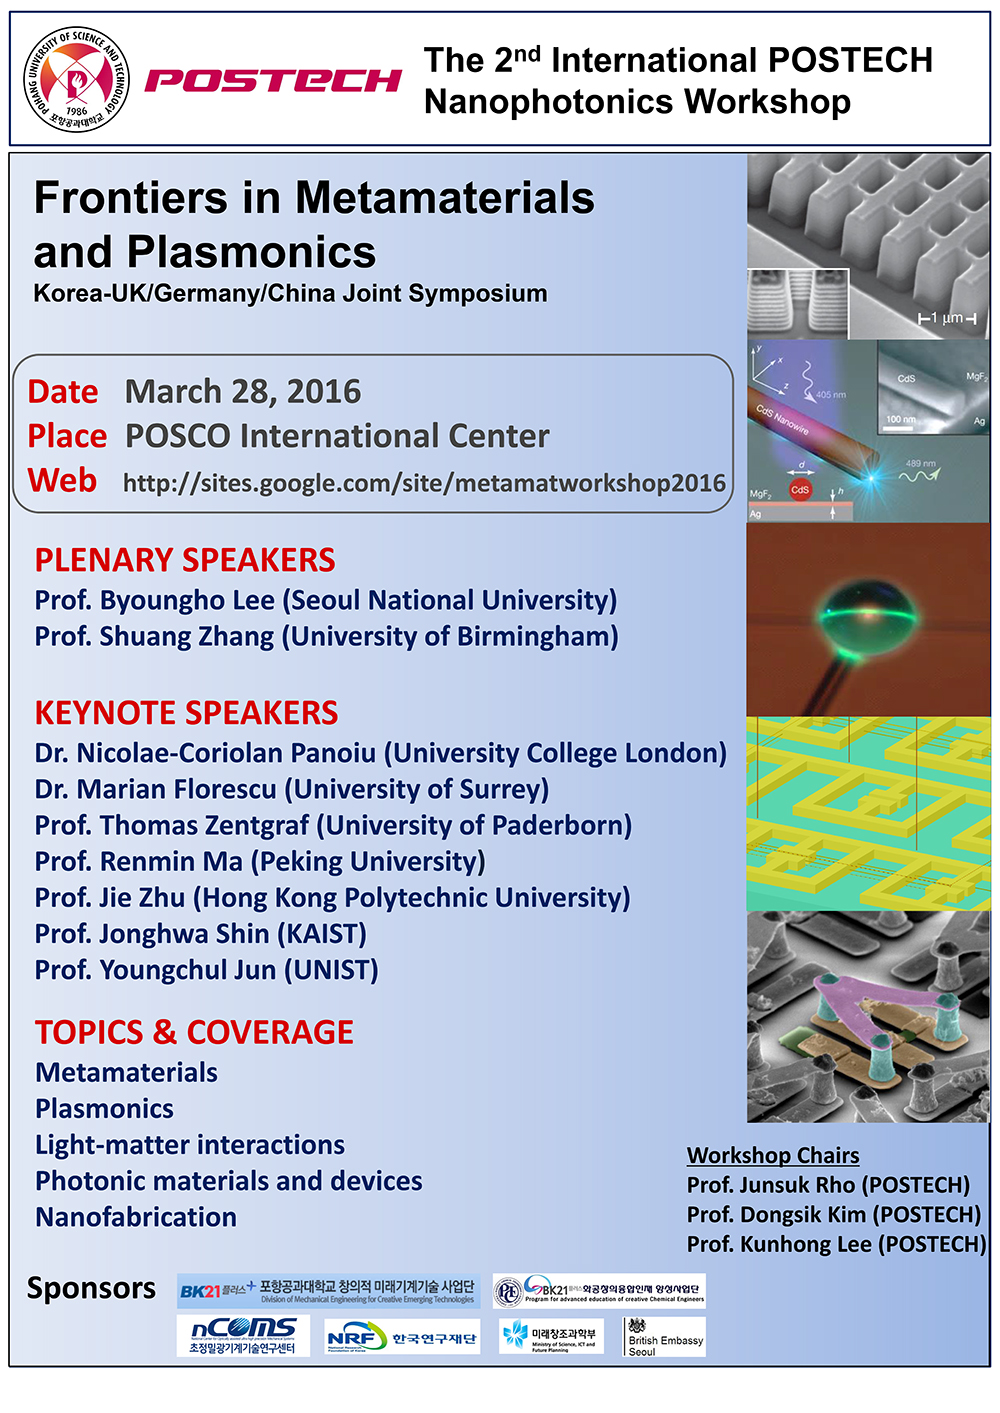 Date: March 28, 2016 Palce: POSCO International Center